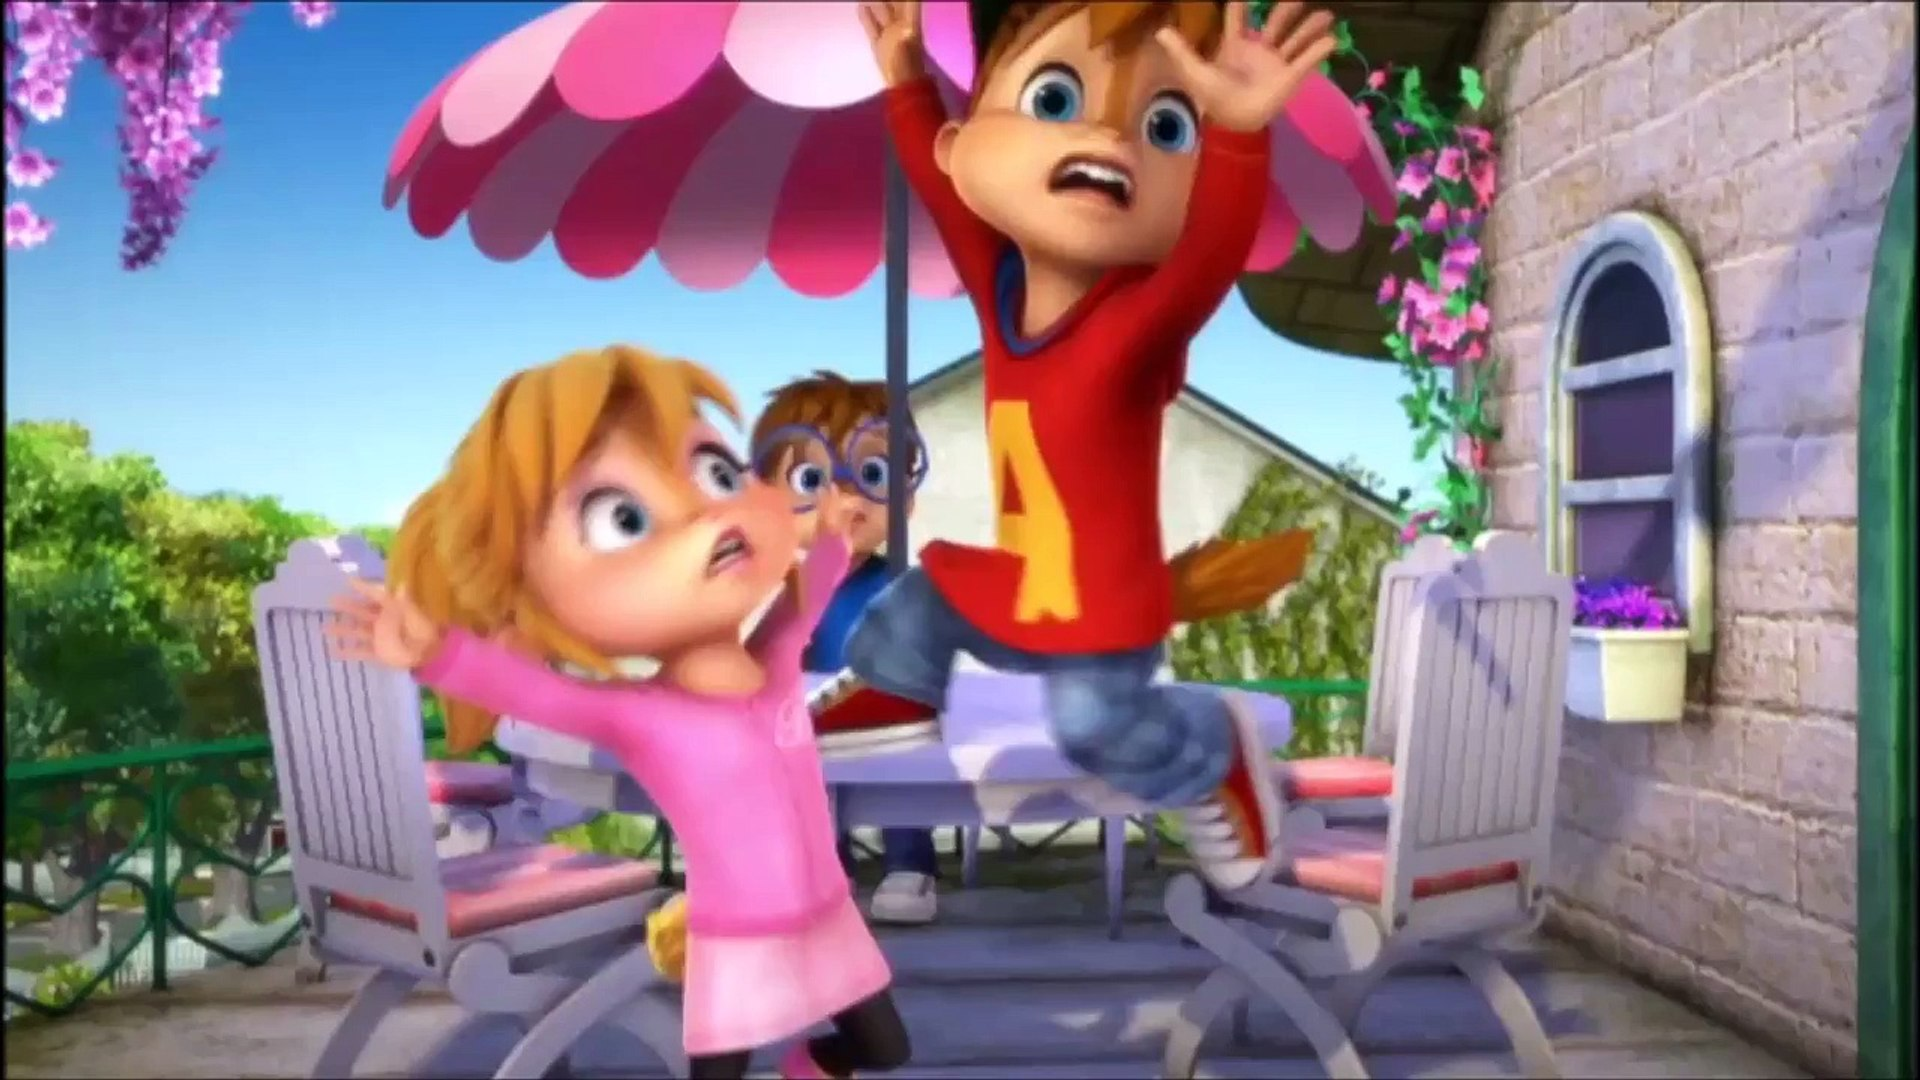 Alvinnn And The Chipmunks Brittany And Alvin alvin and brittany ~ under your spell (alvittany